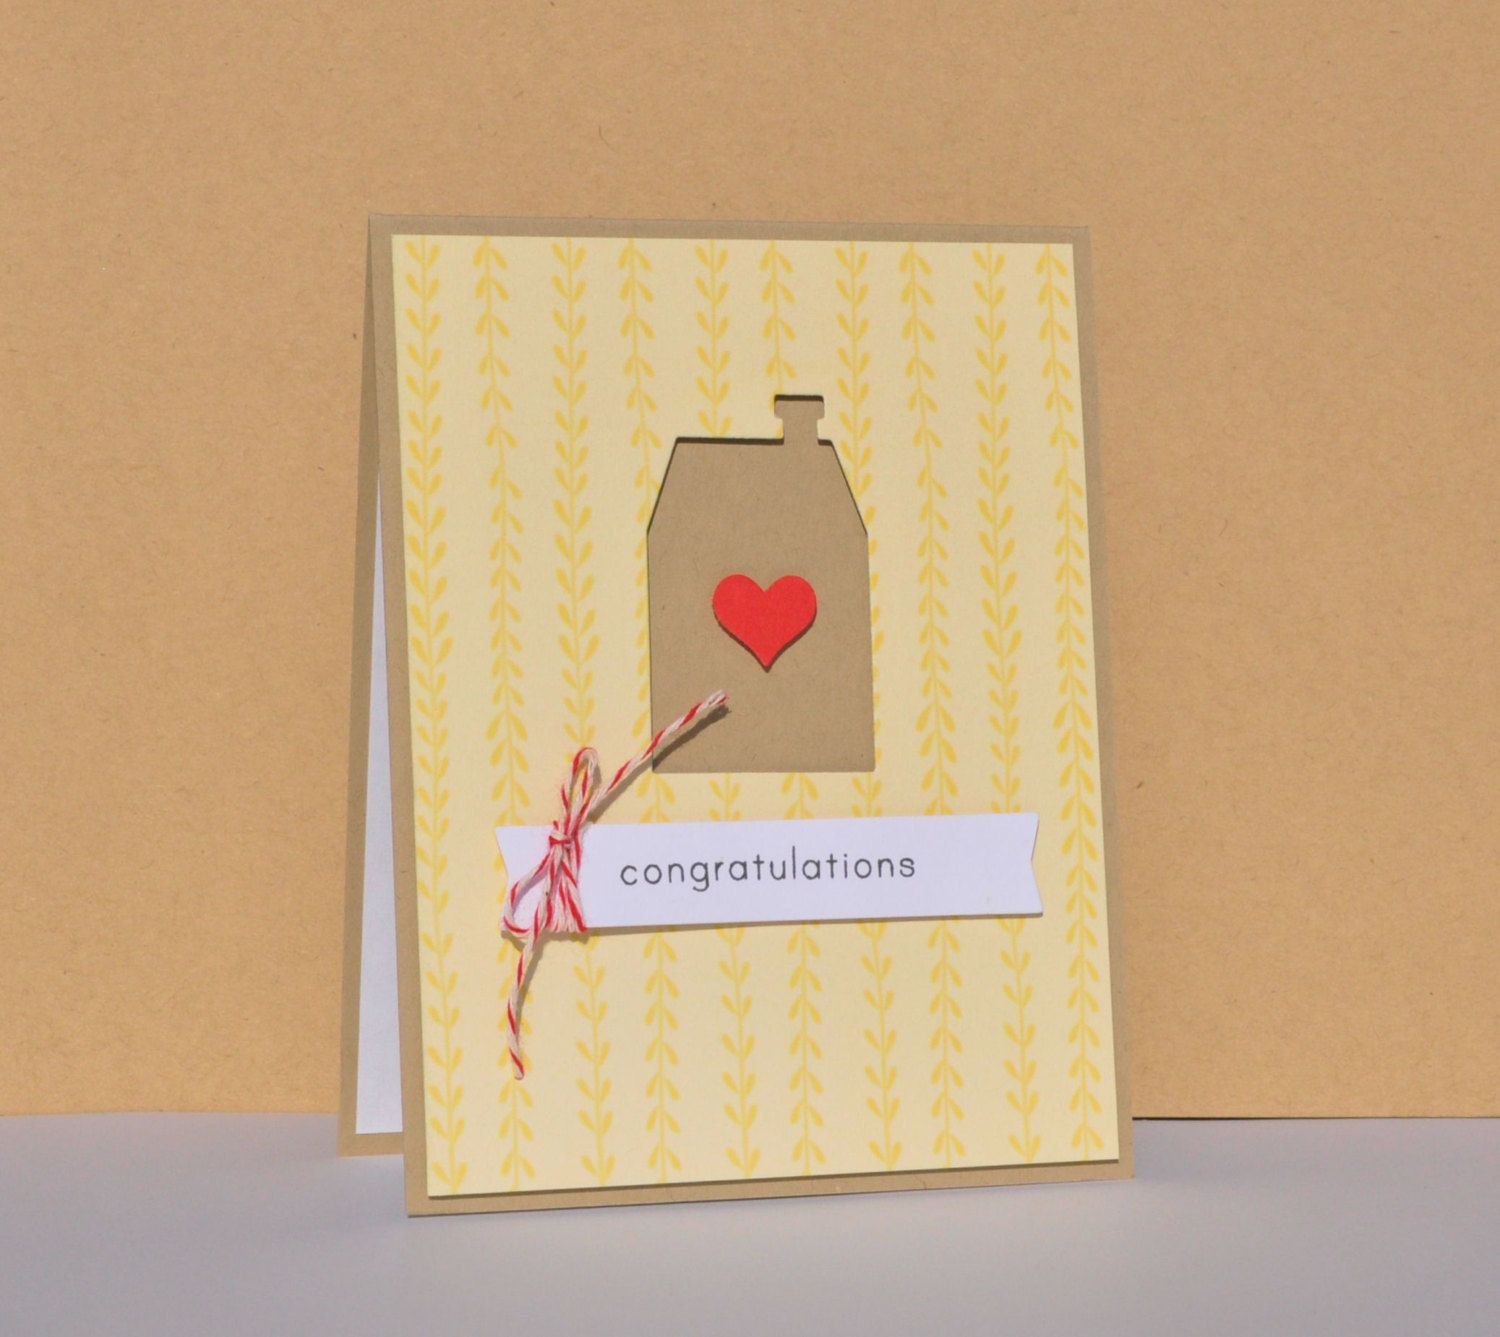 New home greeting card housewarming card hand stamped new home new home greeting card housewarming card hand stamped new home card happy new home card congratulations on your new home kristyandbryce Image collections